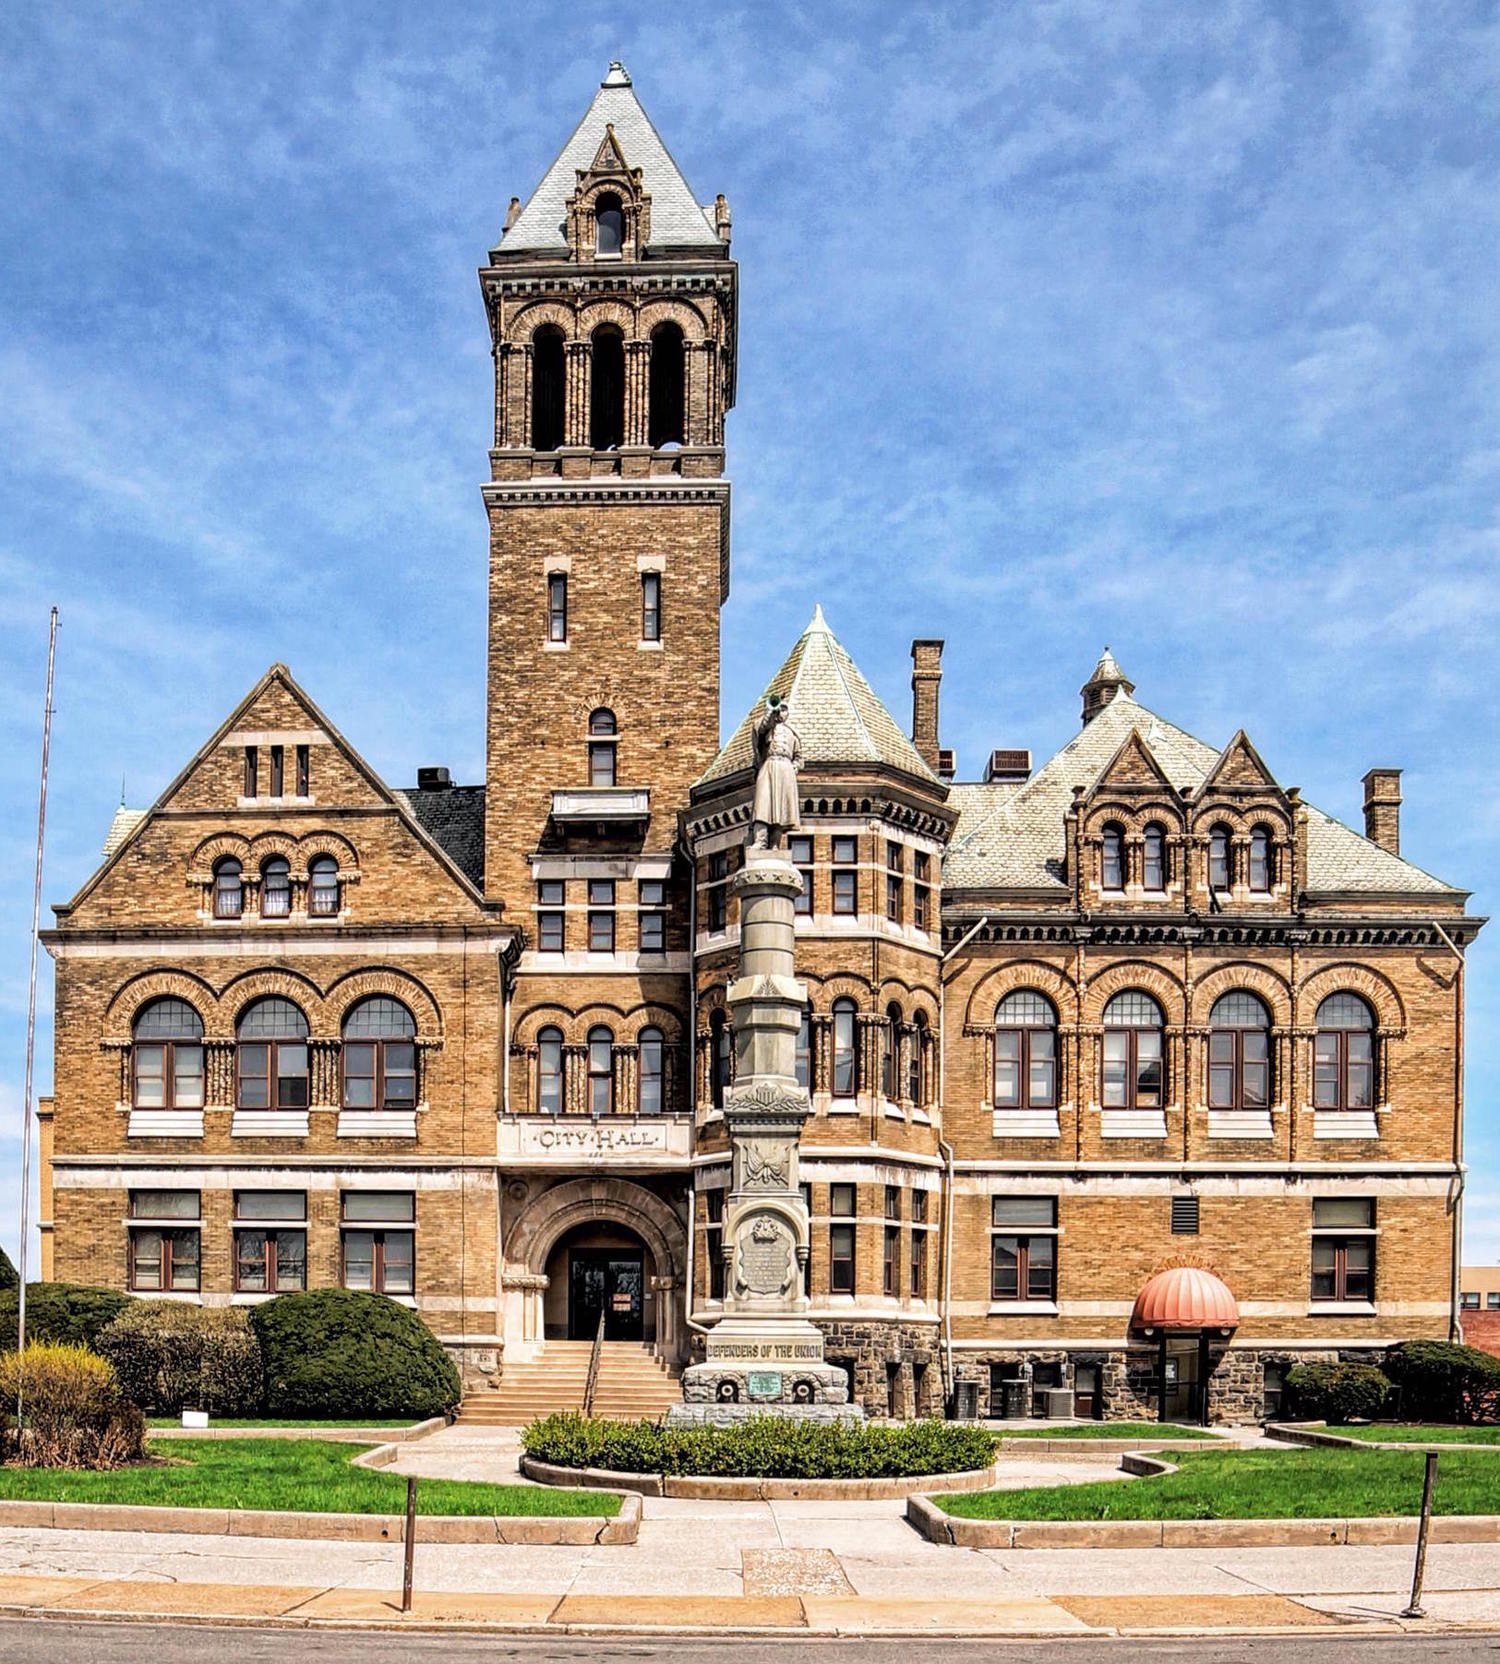 Williamsport's Old City Hall was completed in 1894.